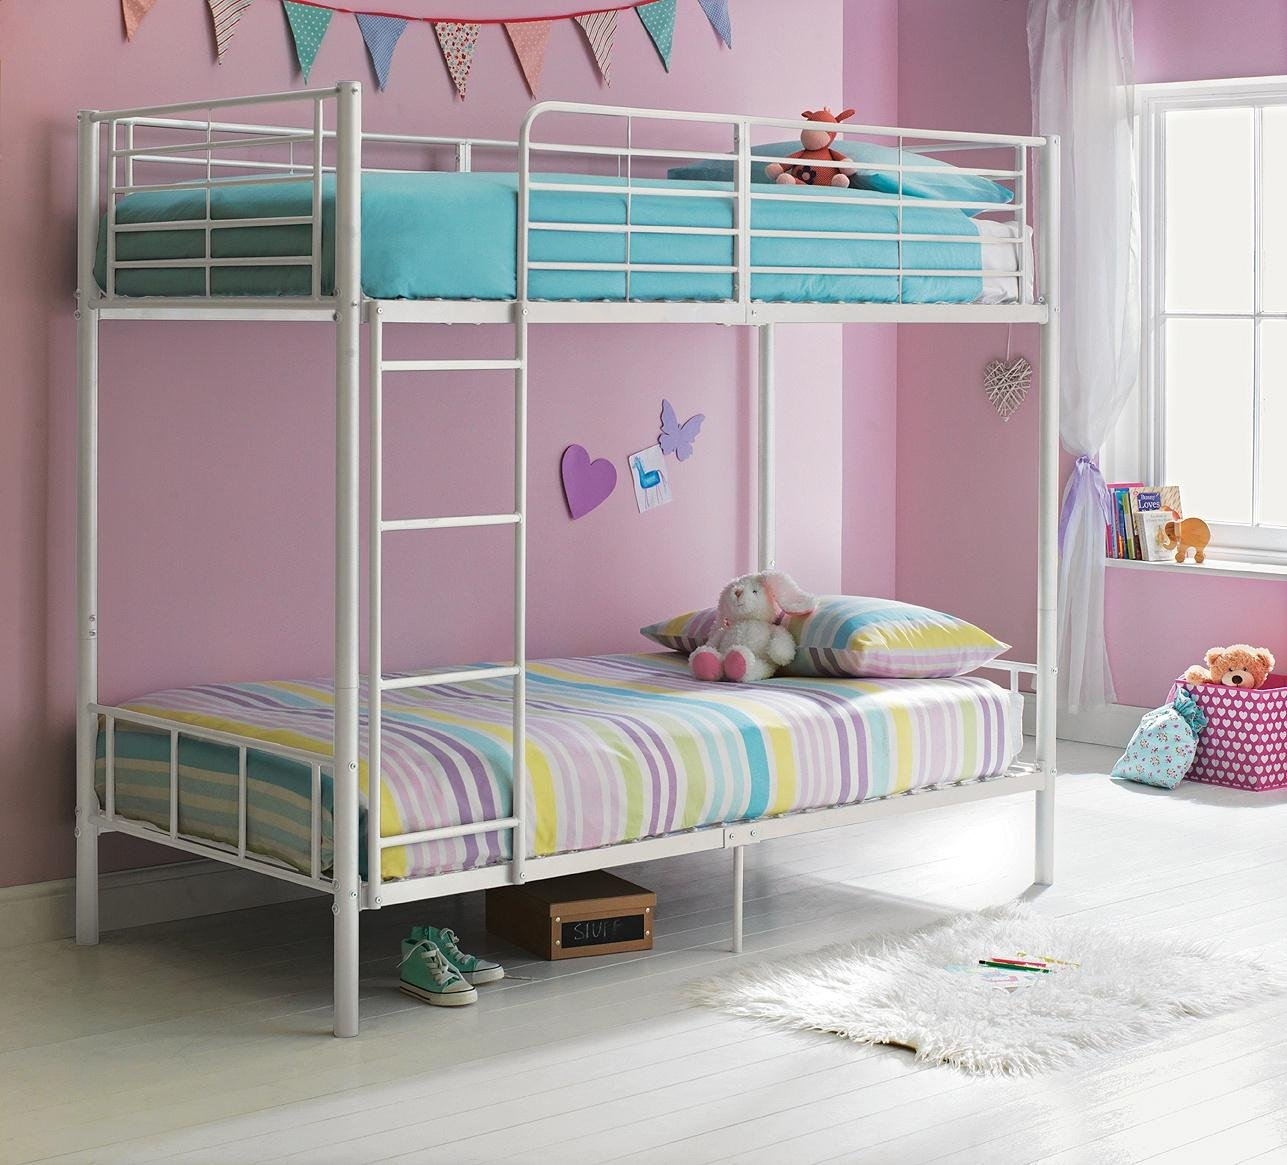 Stylish bunk beds for you